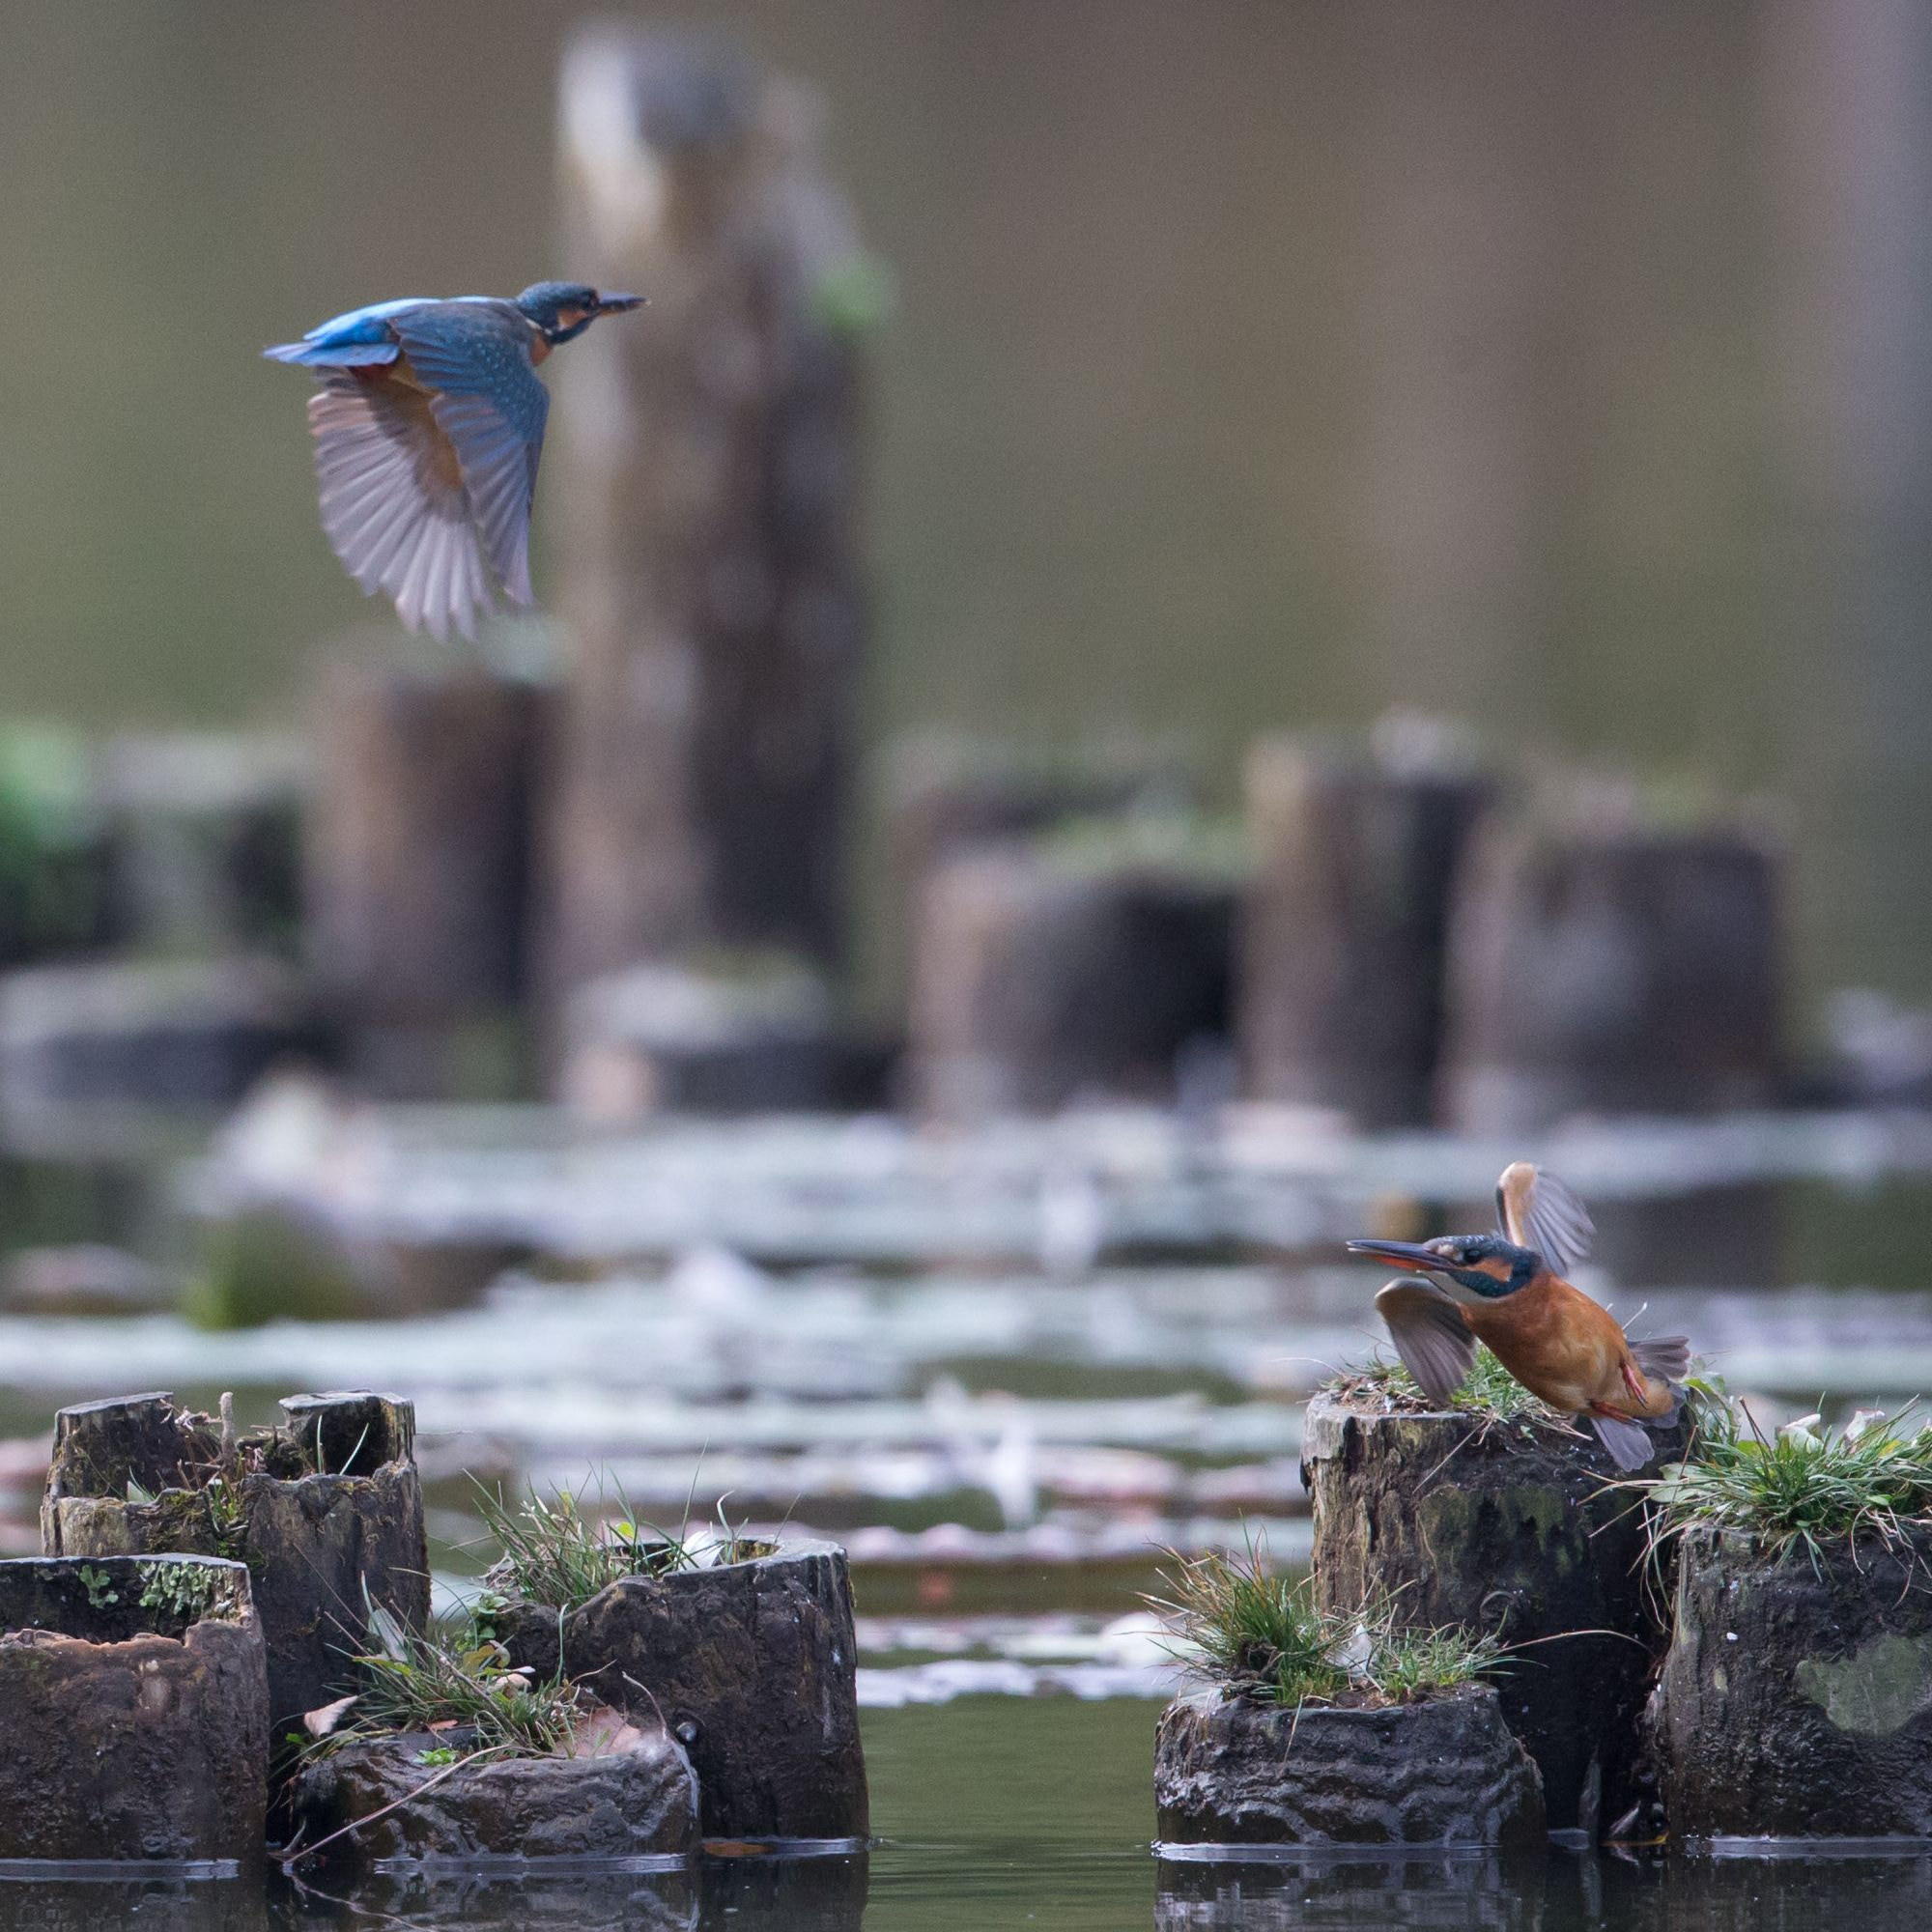 Photograph Common Kingfishers by kunito1228 on 500px